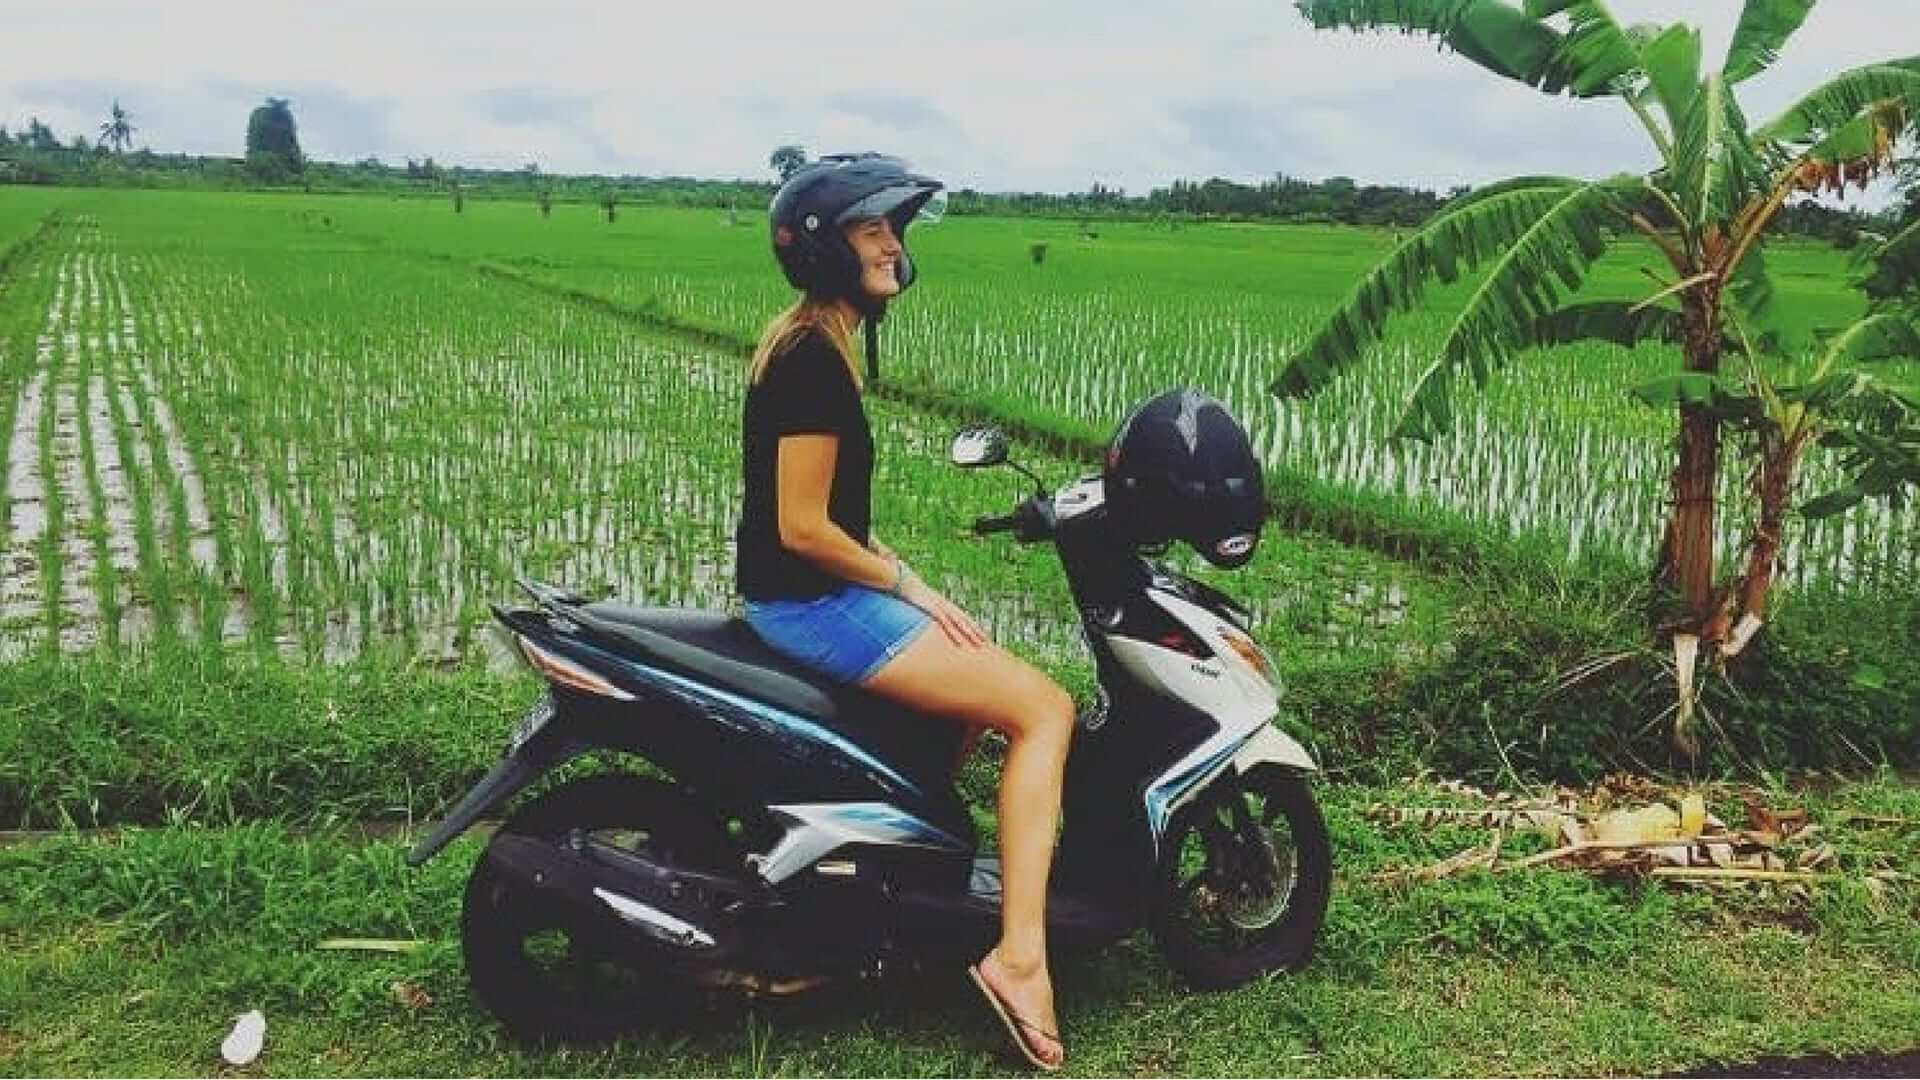 Girl on a scooter in front of rice fields in Tanah Lot.